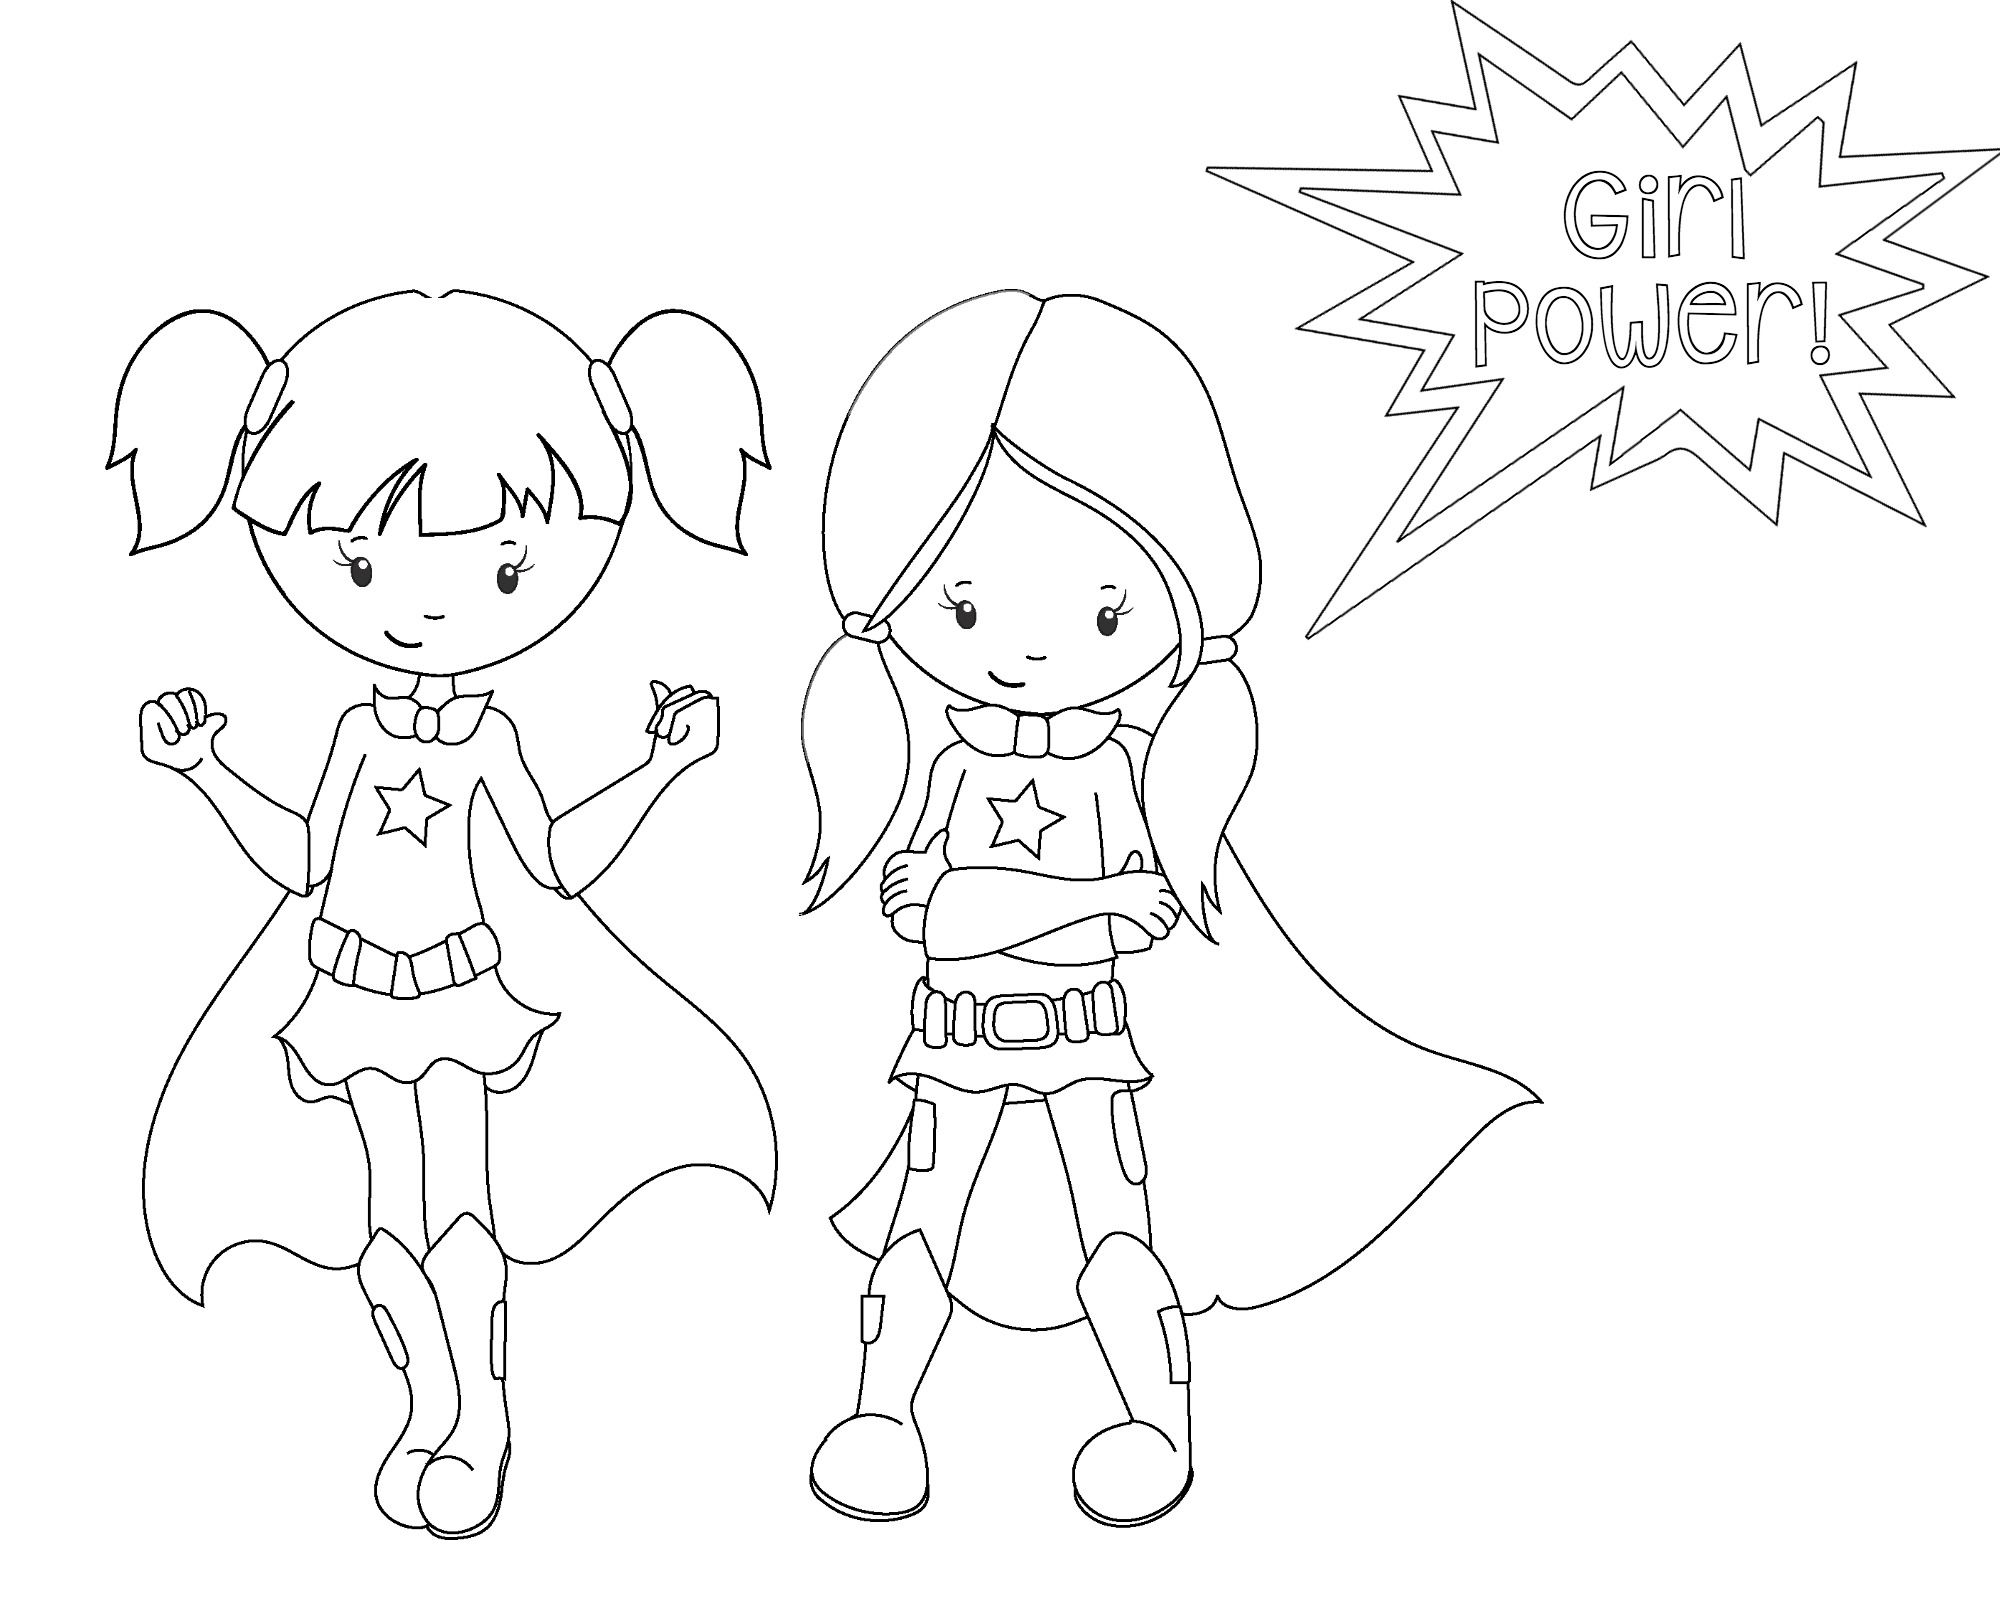 Free Printable Superhero Coloring Sheets For Kids